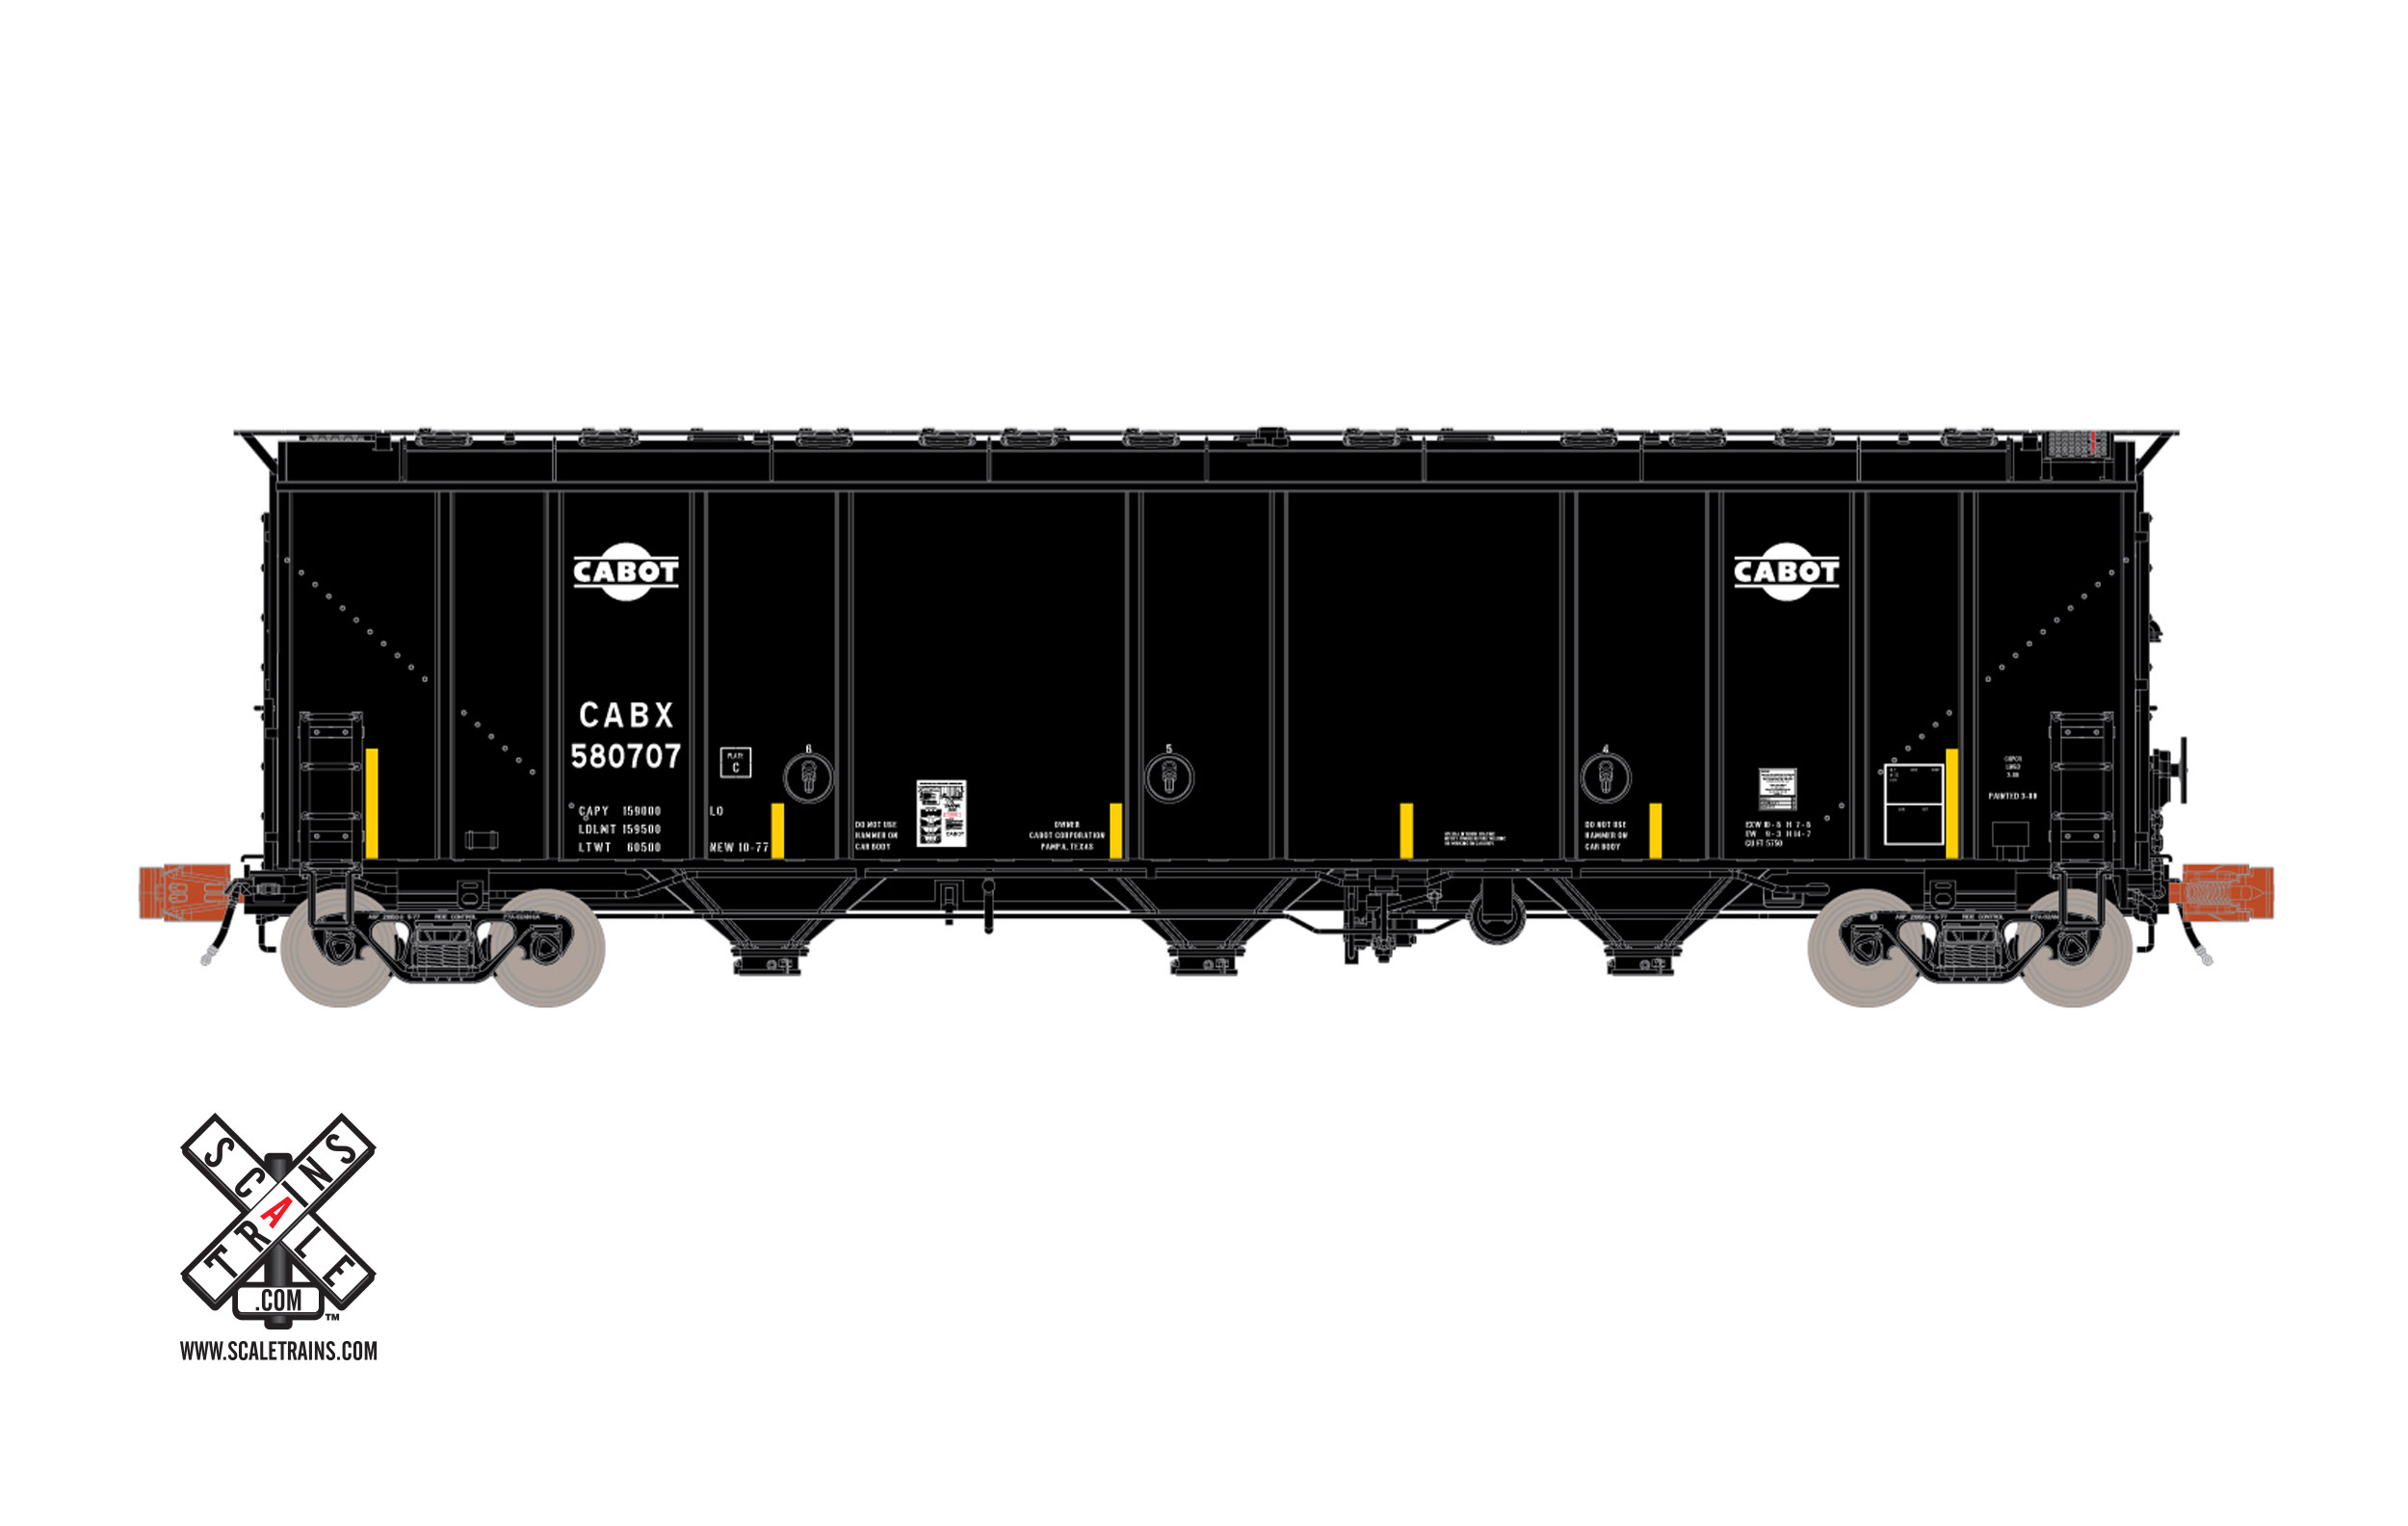 N Scale - ScaleTrains.com - STX30561 - Covered Hopper, 3-Bay, Thrall 5750 - Cabot - 580718